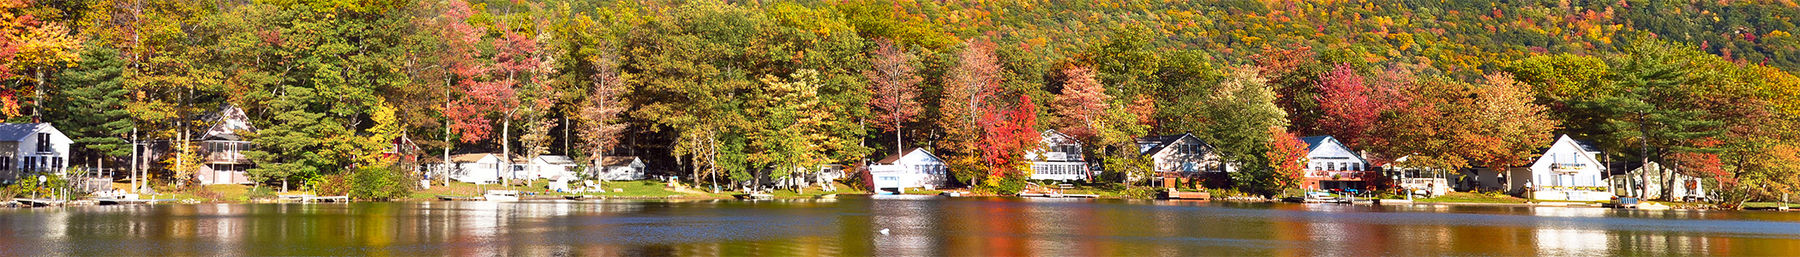 Fall foliage Vermont banner.jpg